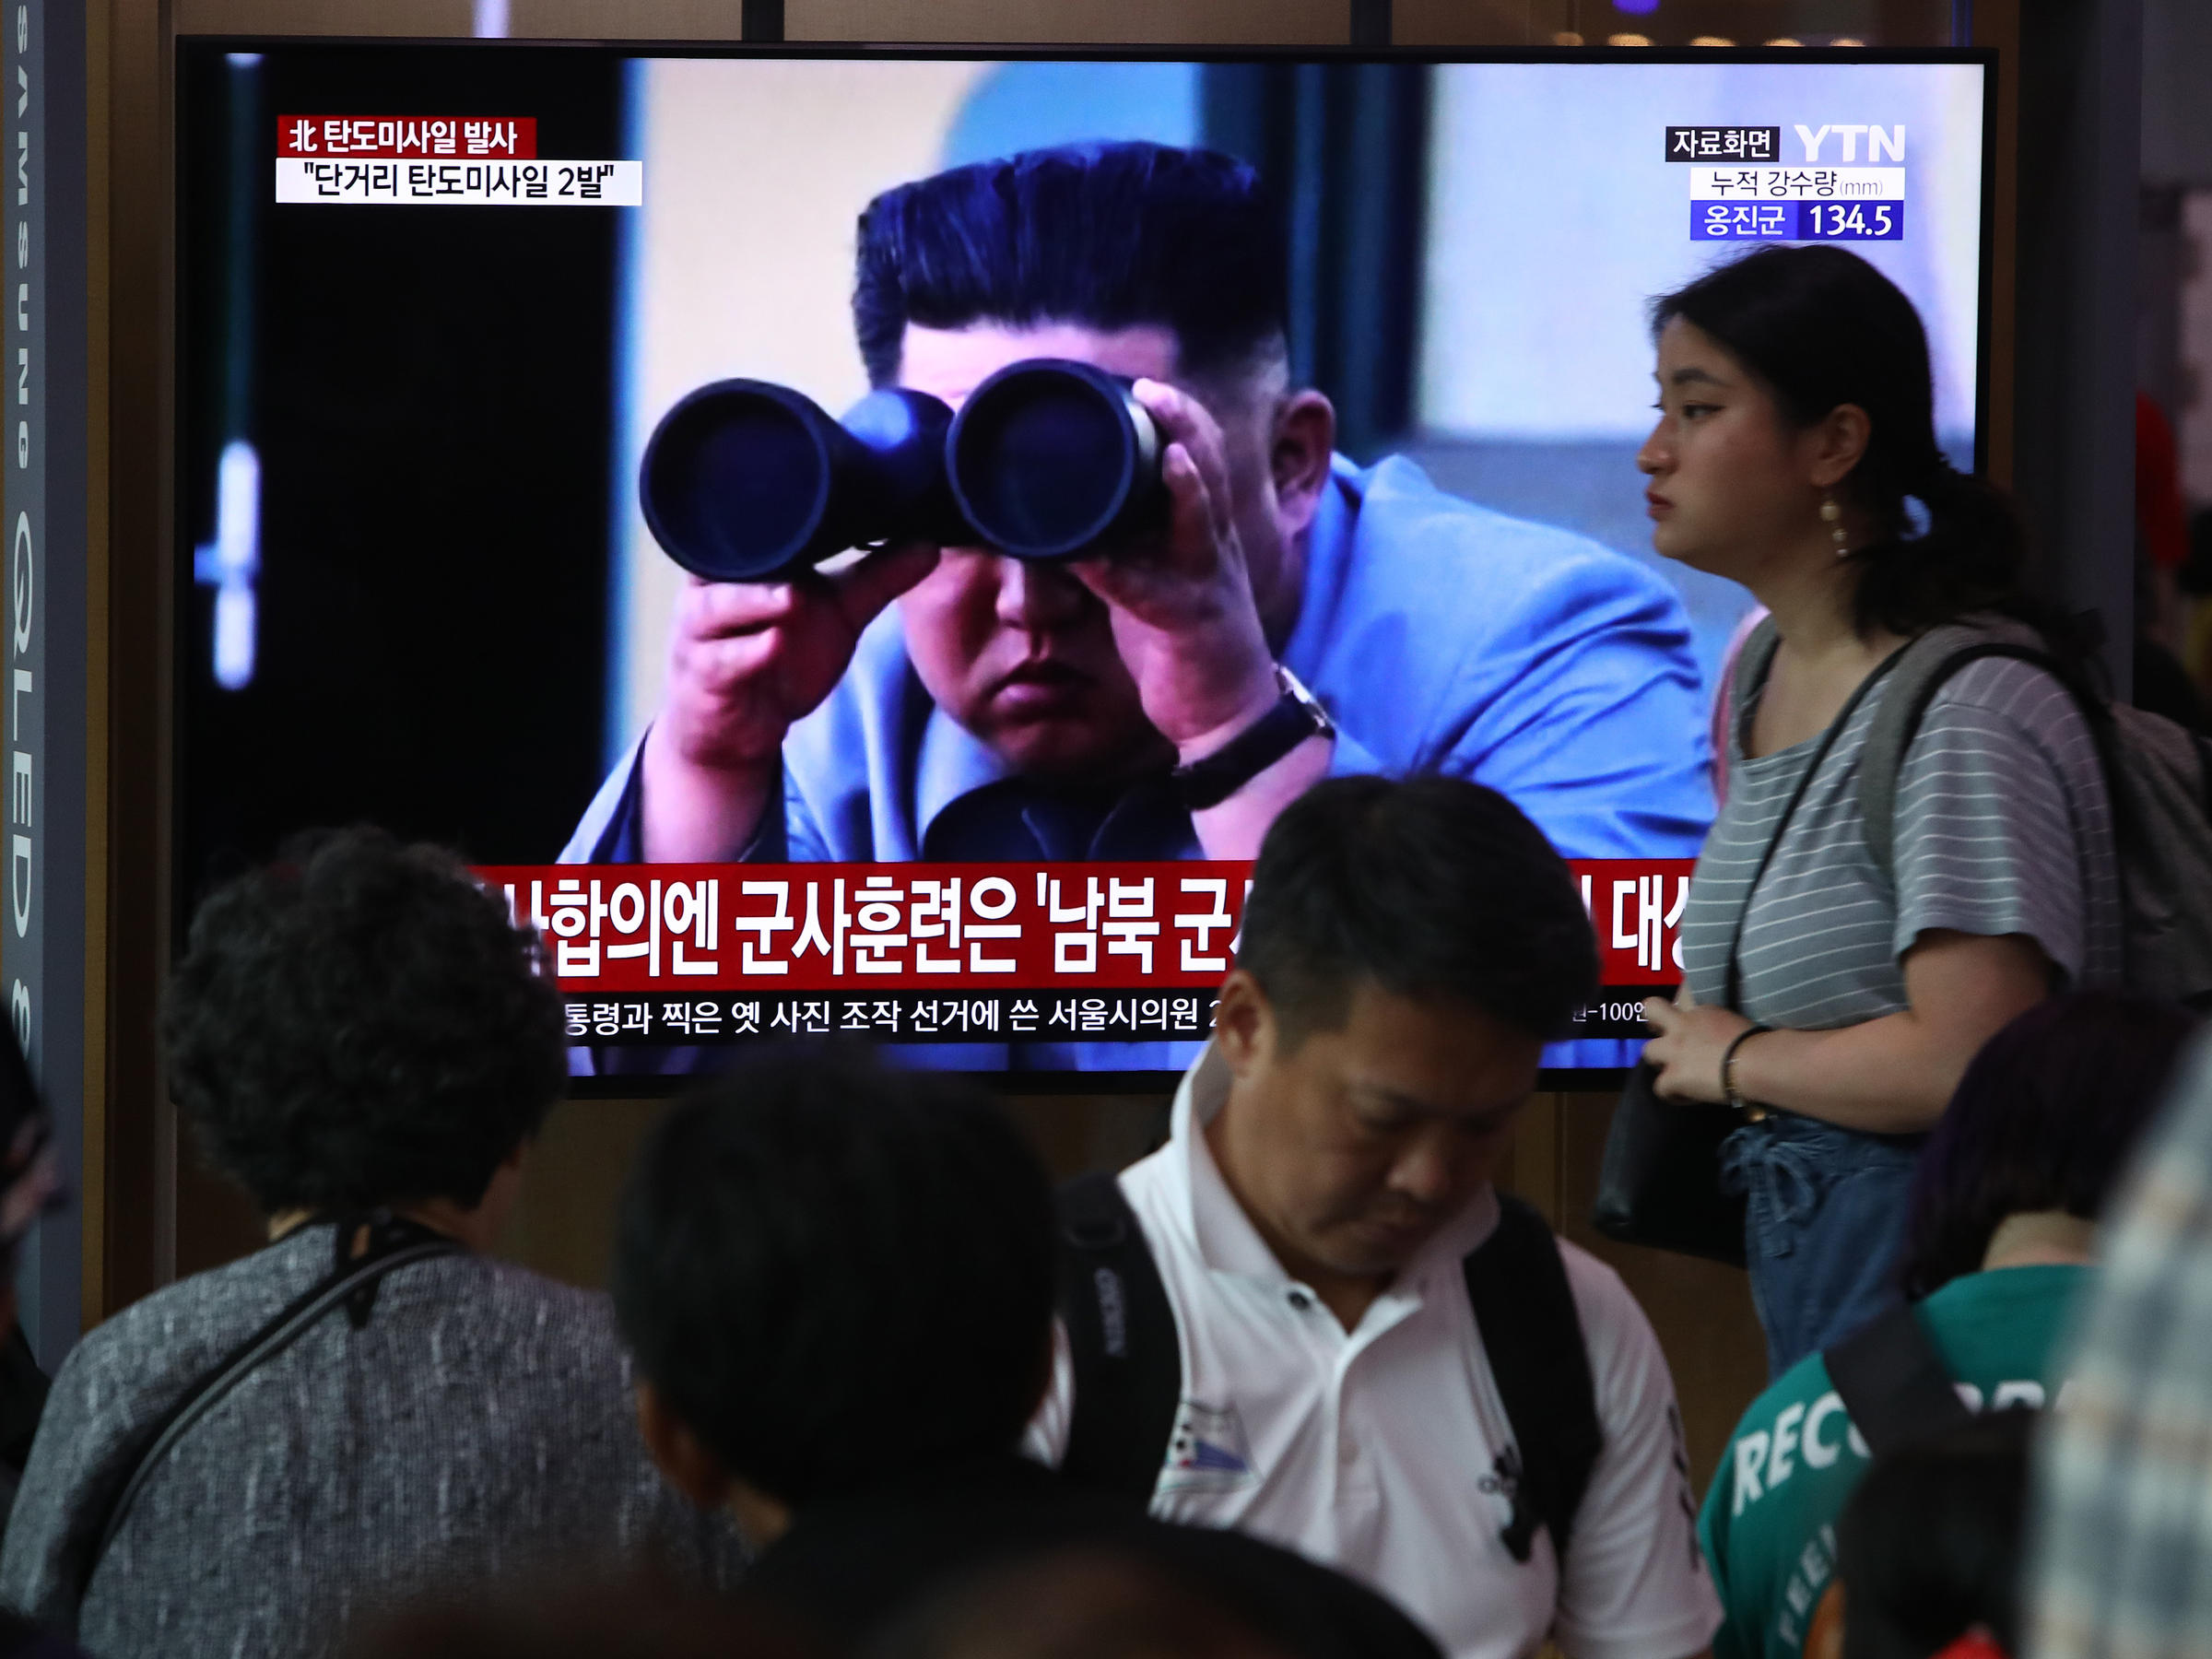 North Korea Conducts 2nd Missile Test In A Week | Iowa Public Radio